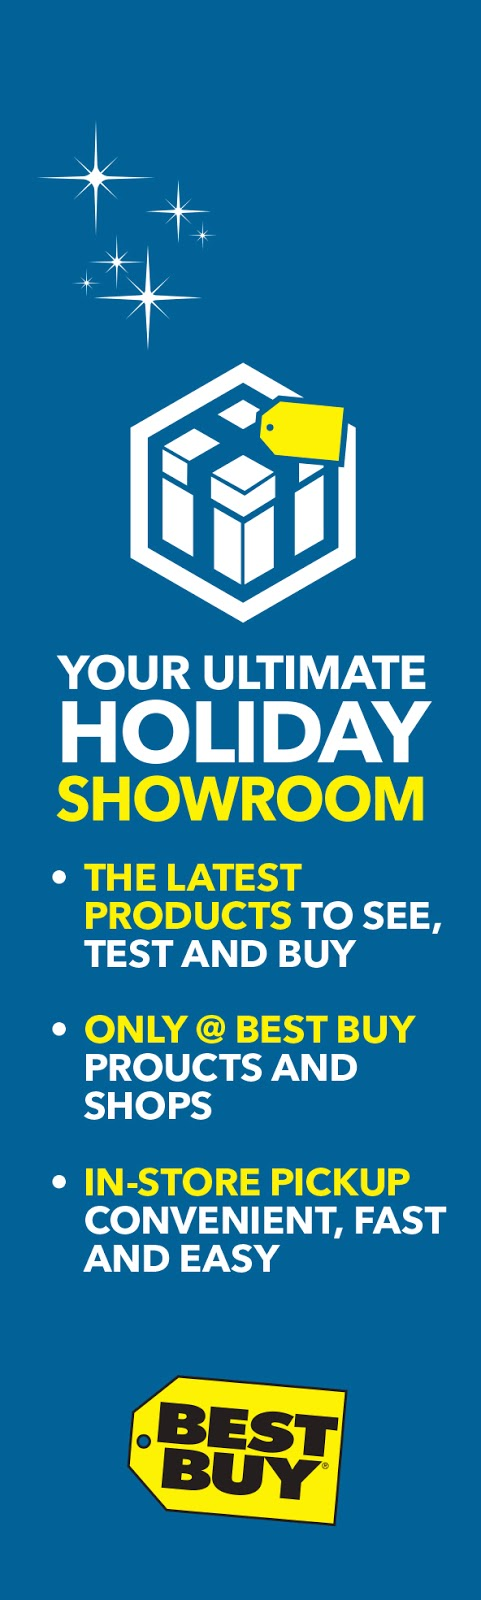 Bonggamom Finds: Shop Best Buy for the Holidays